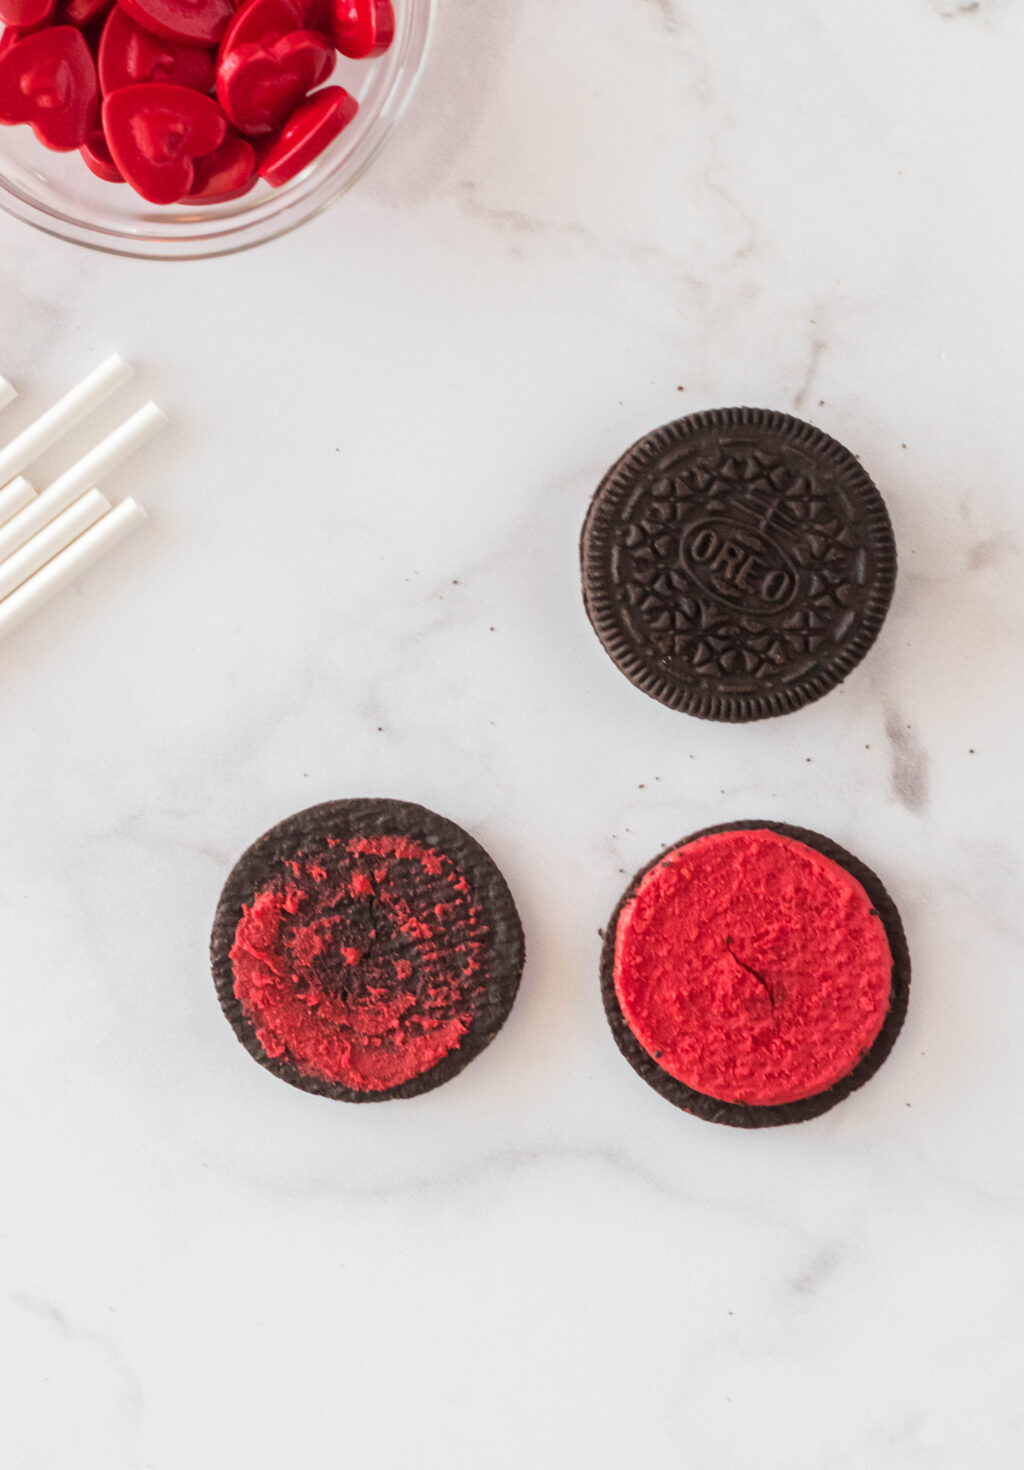 red oreos separated in half